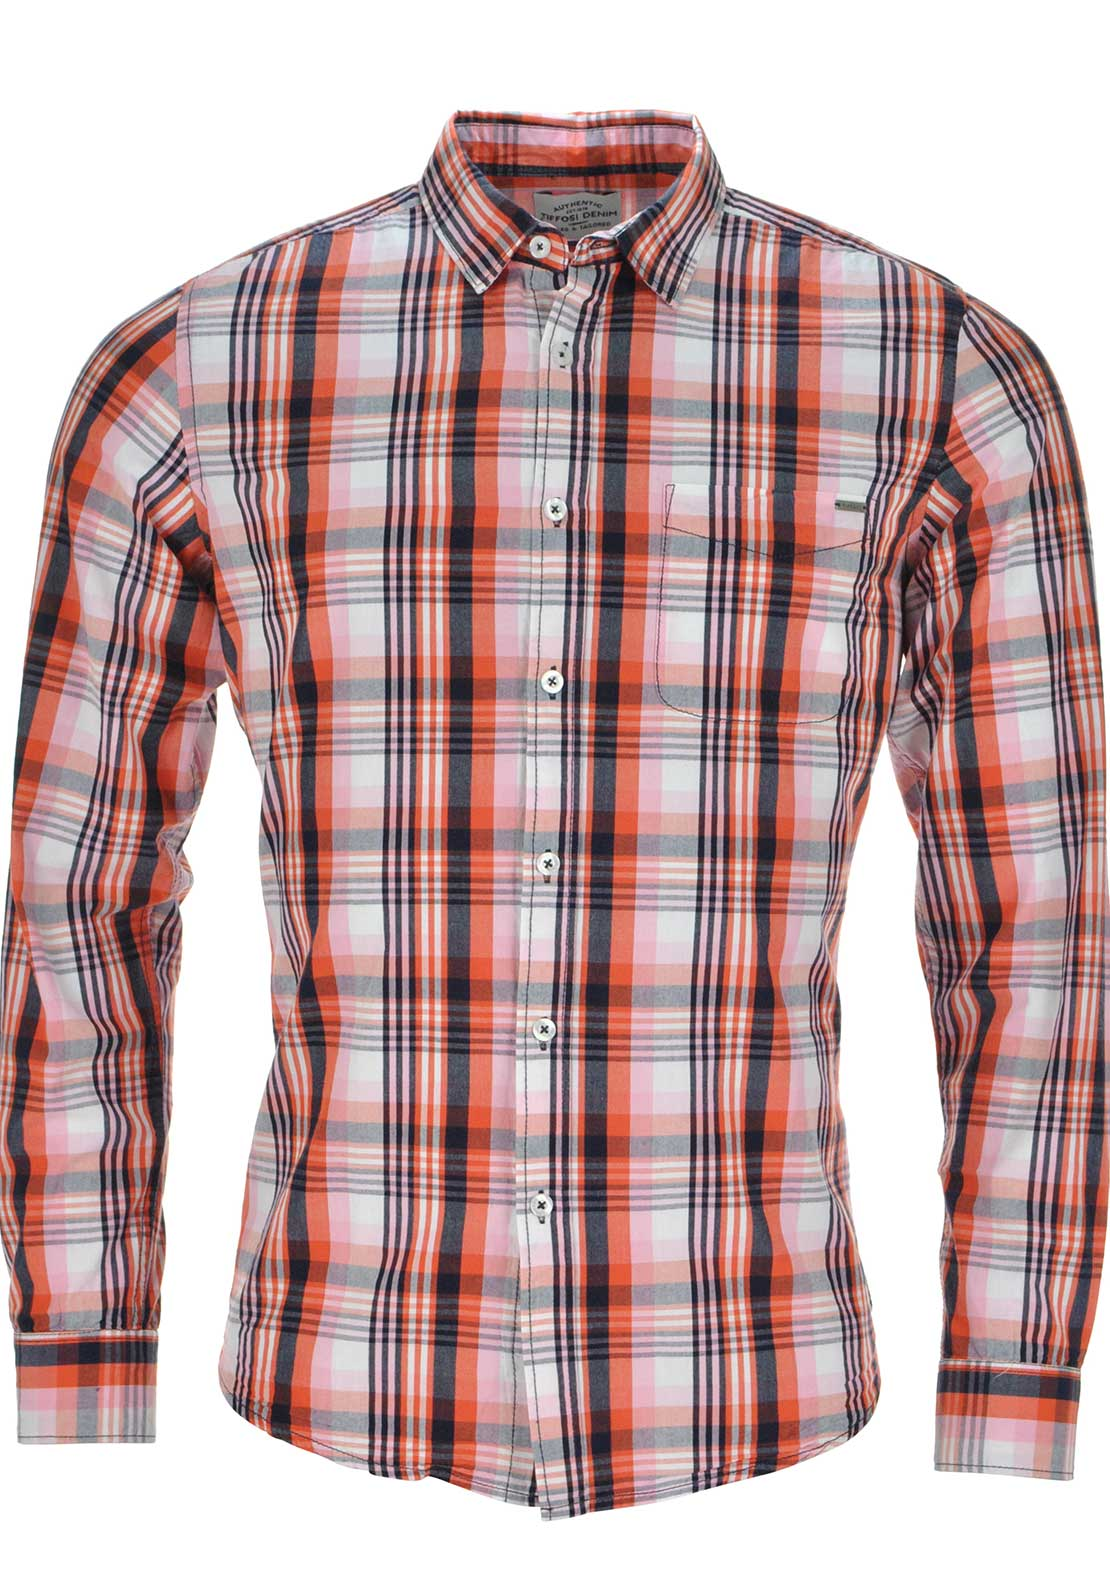 Tiffosi Mens Long Sleeved Checked Shirt, Orange